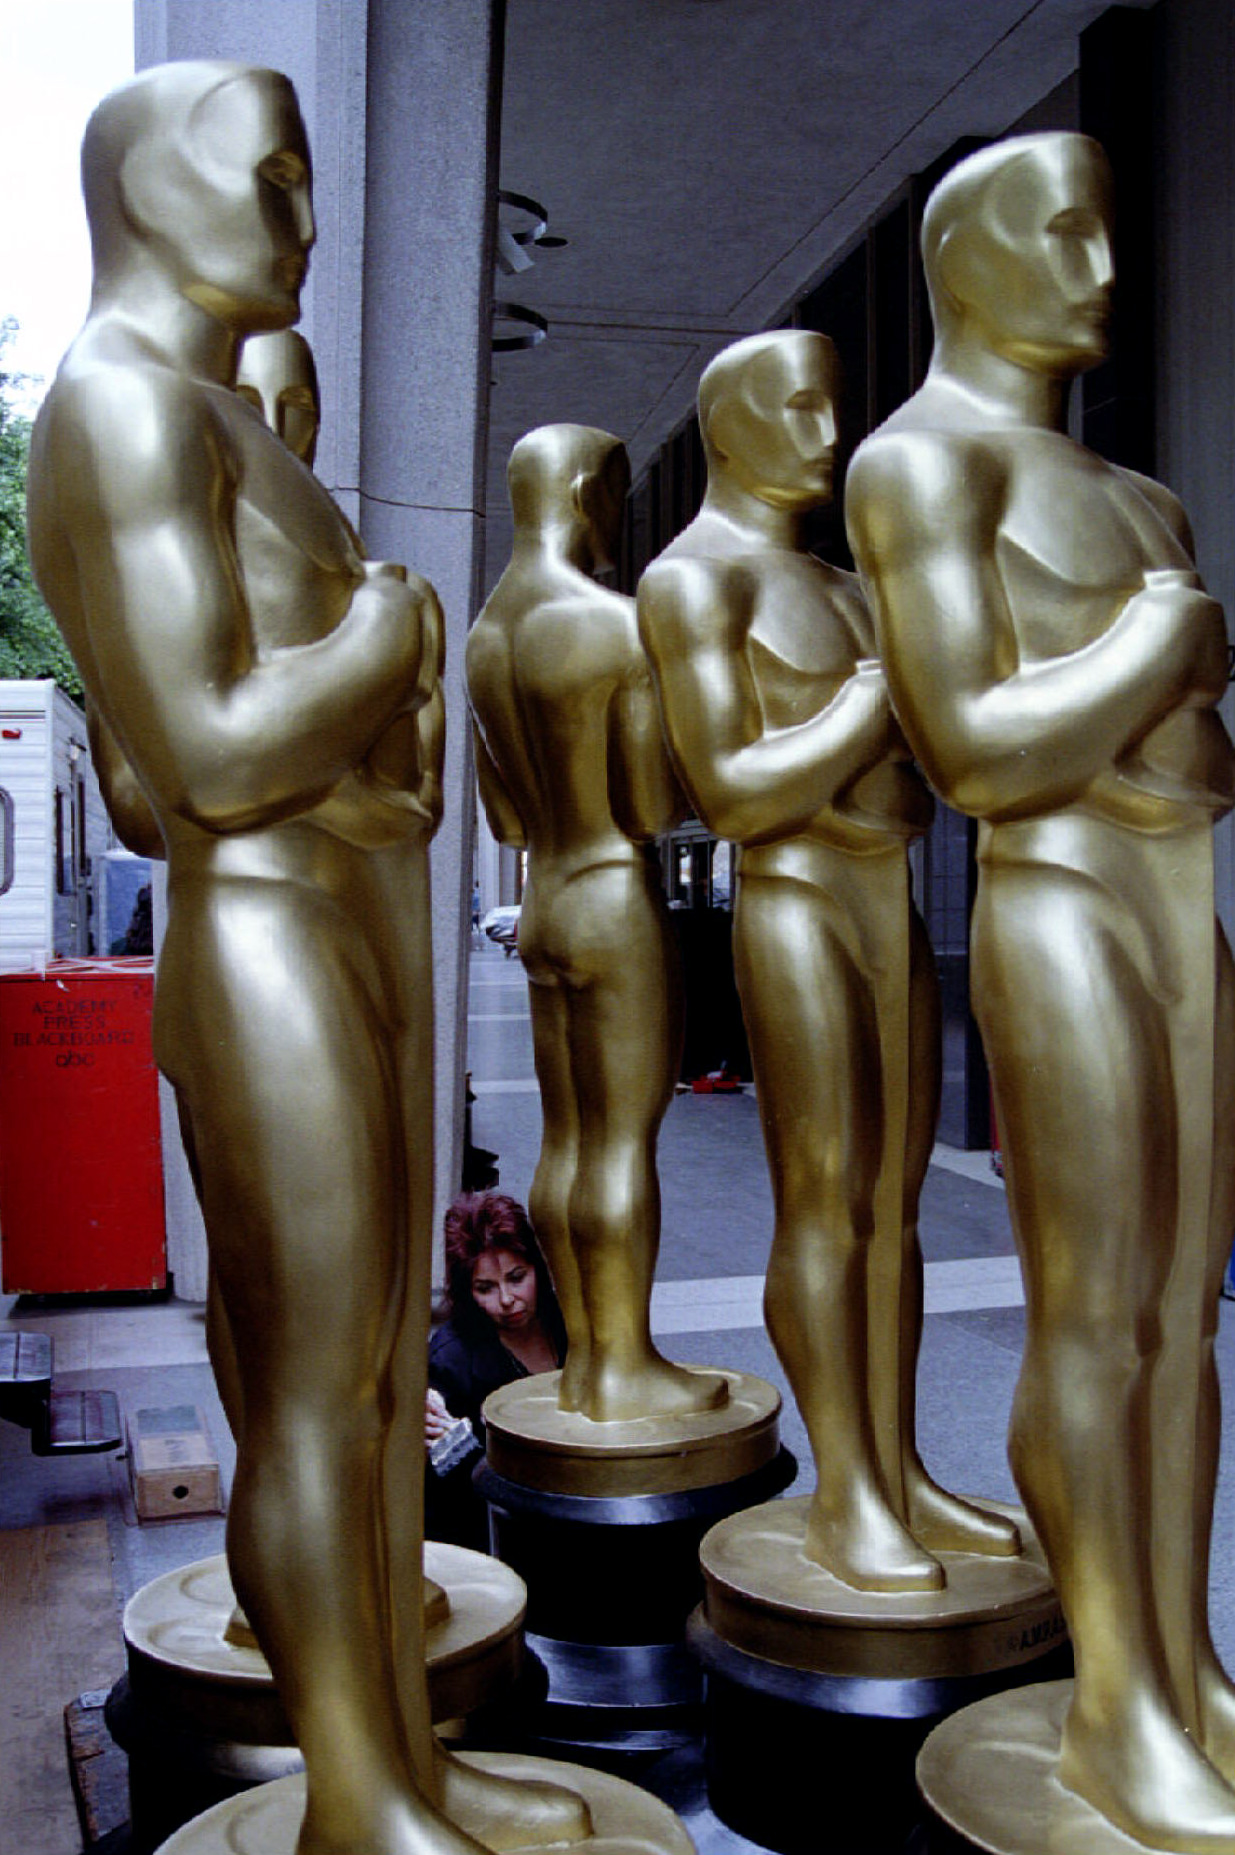 Oscars The Academy Awards In Numbers Trivia Gallery Oscar Statuette likewise Qtl25MFBqcA moreover Oscar Trivia Fun Facts 16 Things You May Not Know About Academy Awards 1819276 moreover Red Carpet Party further Oscars Night Prom 2015. on oscars trivia trophy